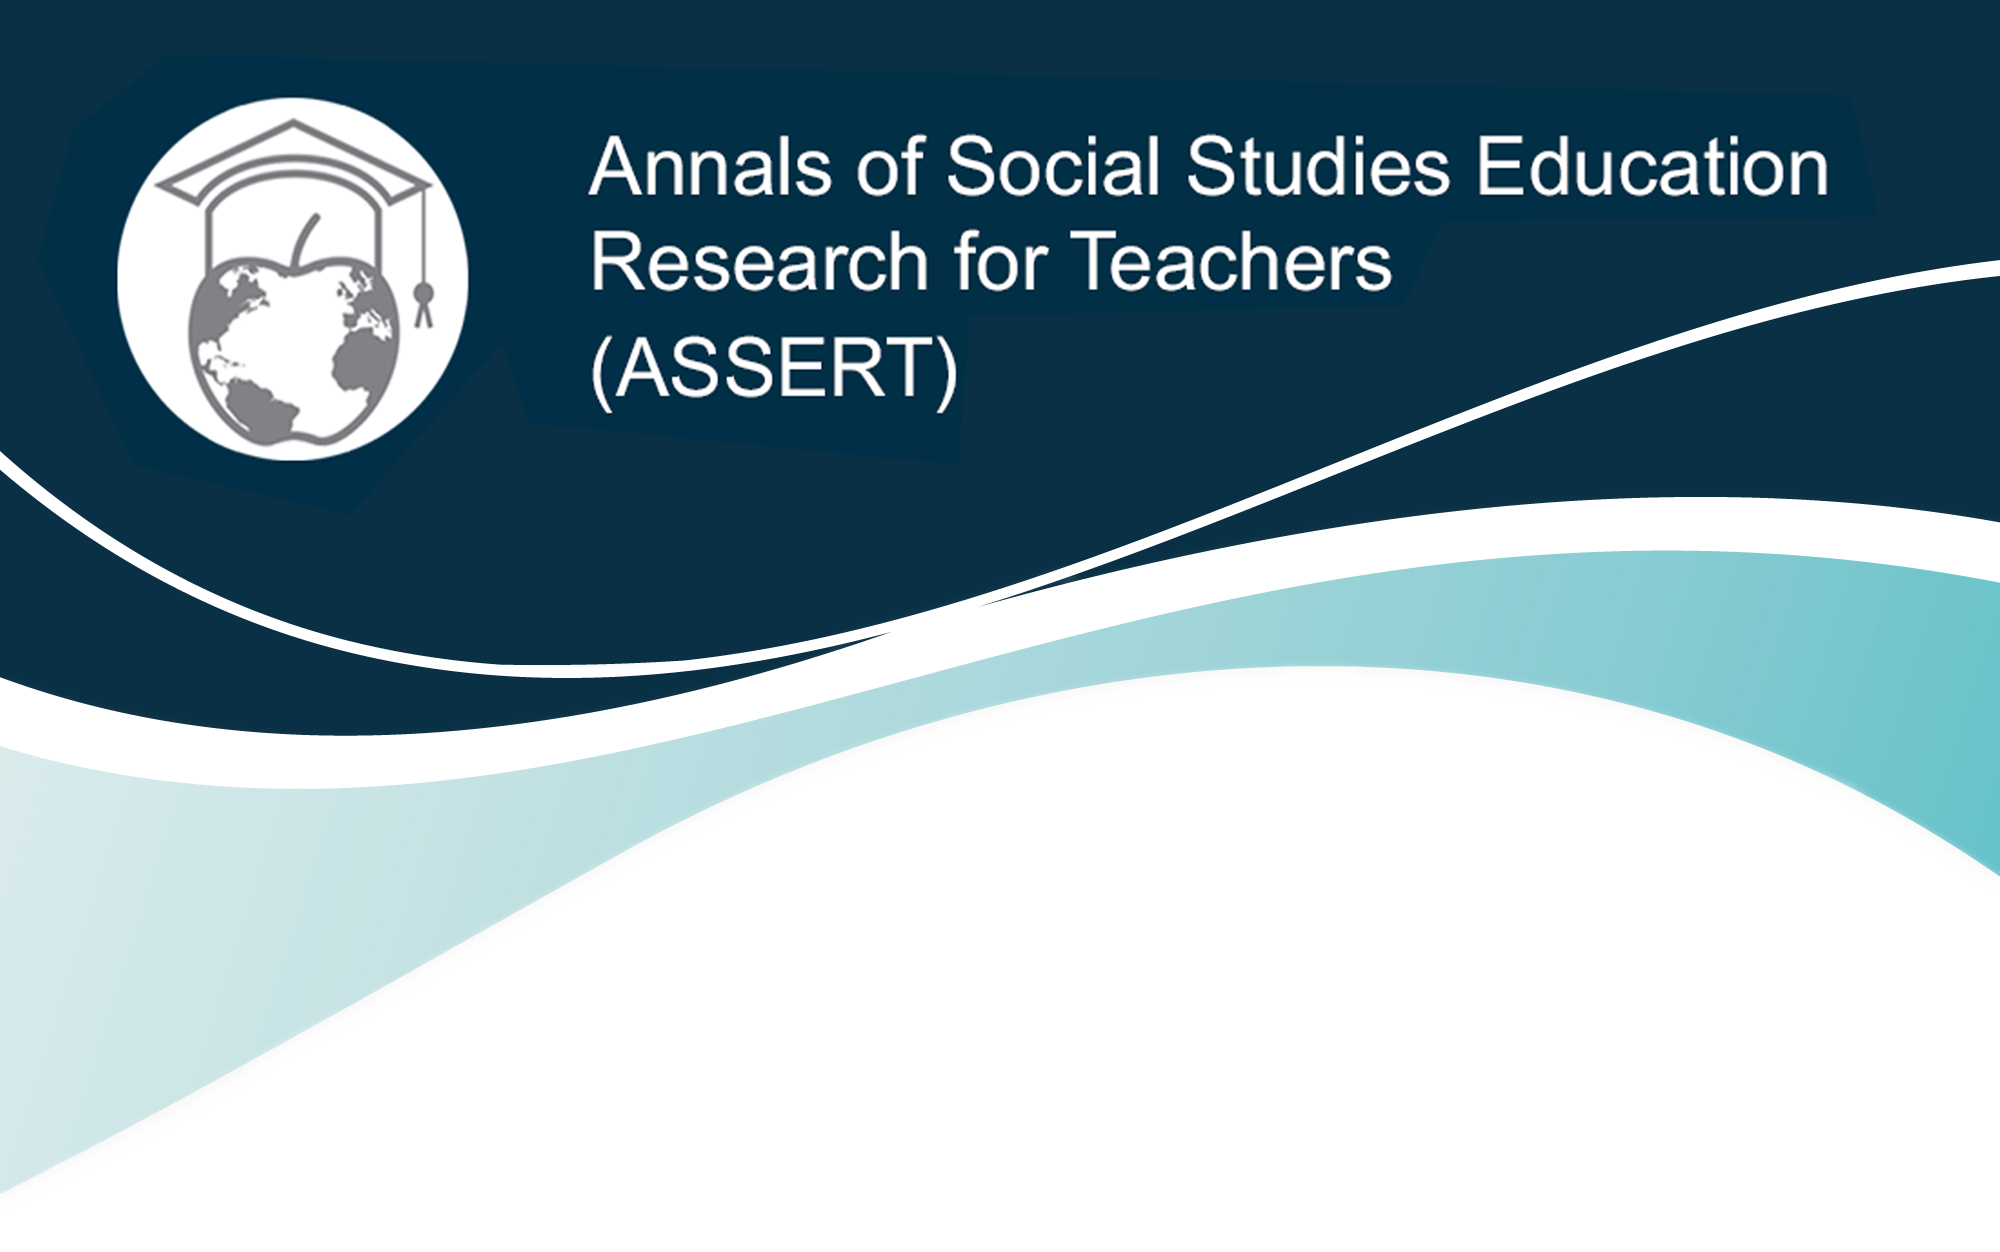 Annals of Social Studies Education Research for Teachers ASSERT